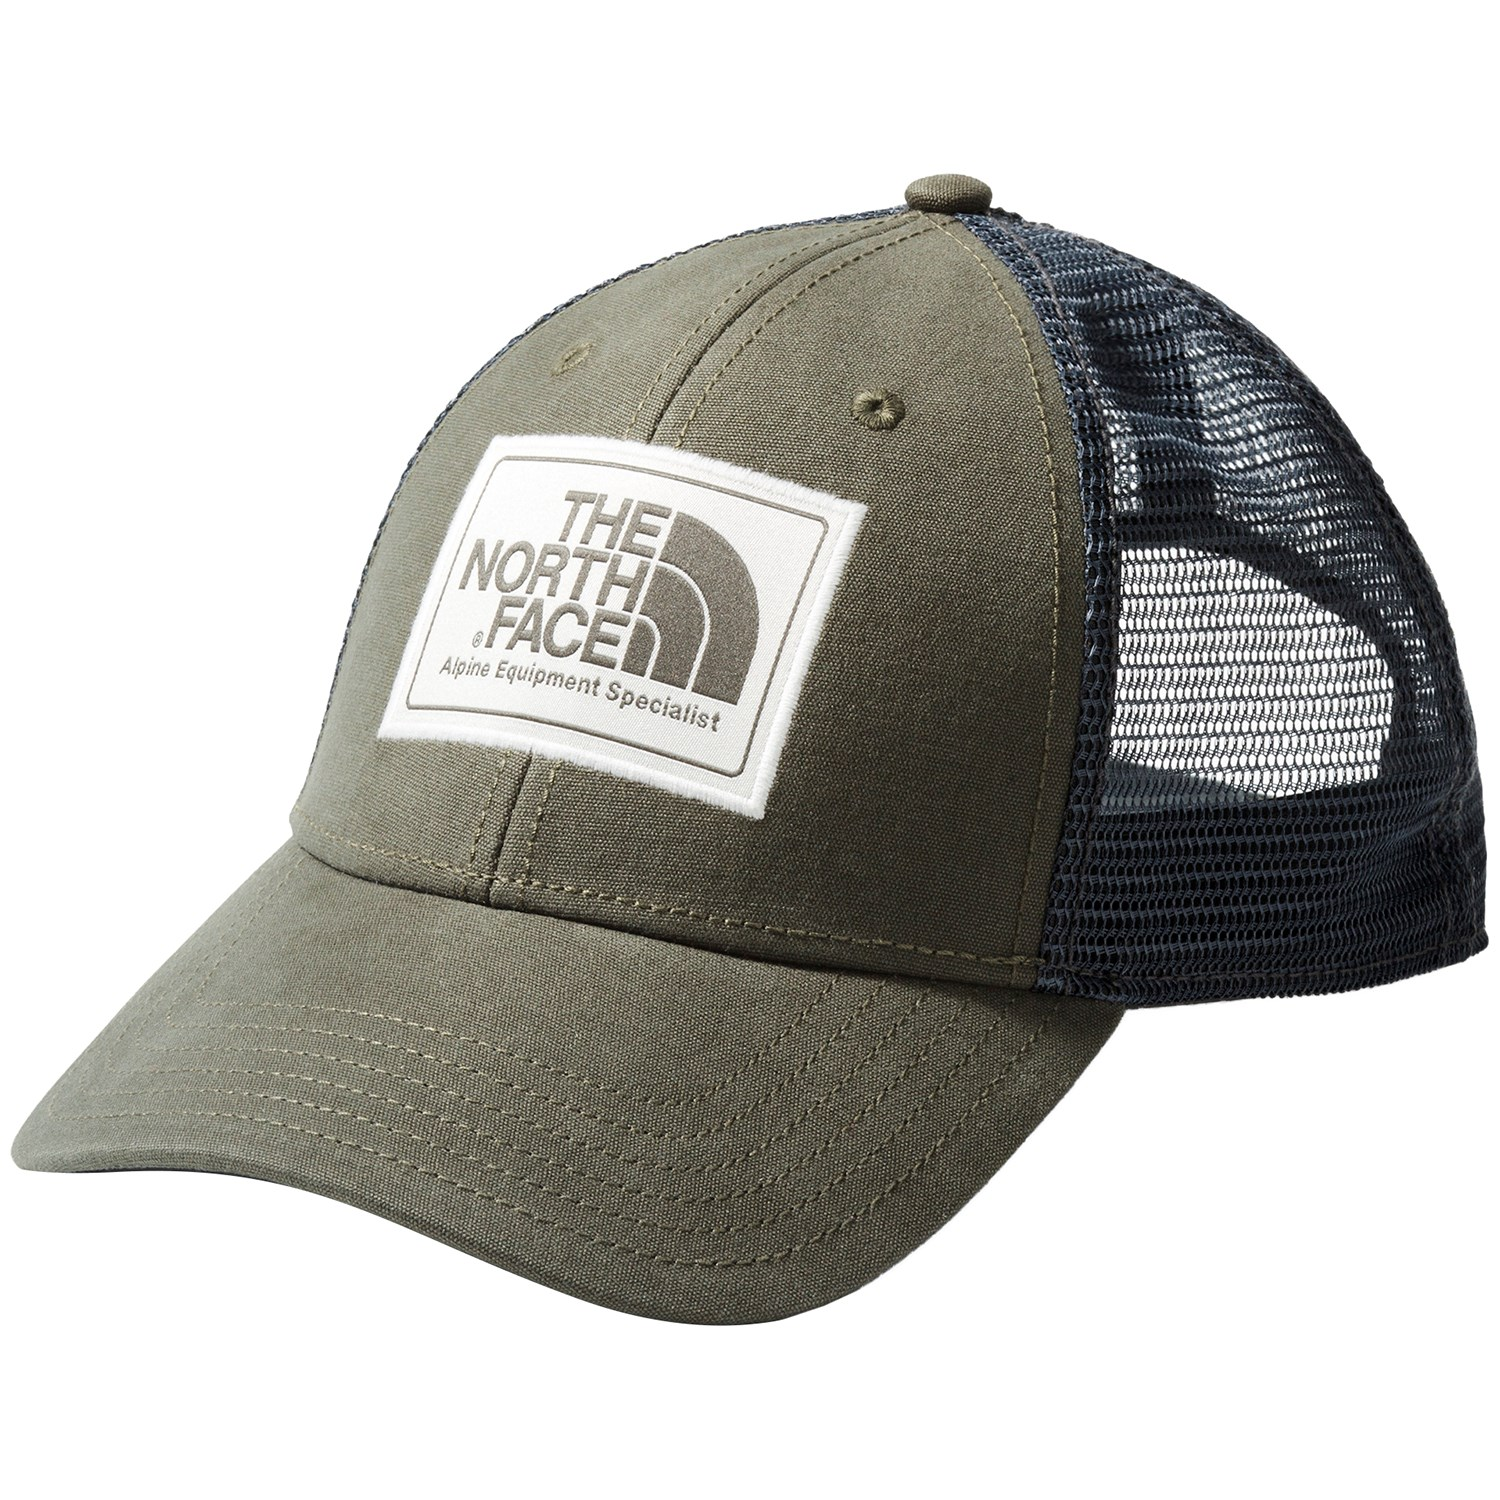 3dd5a18dc The North Face Mudder Trucker Hat